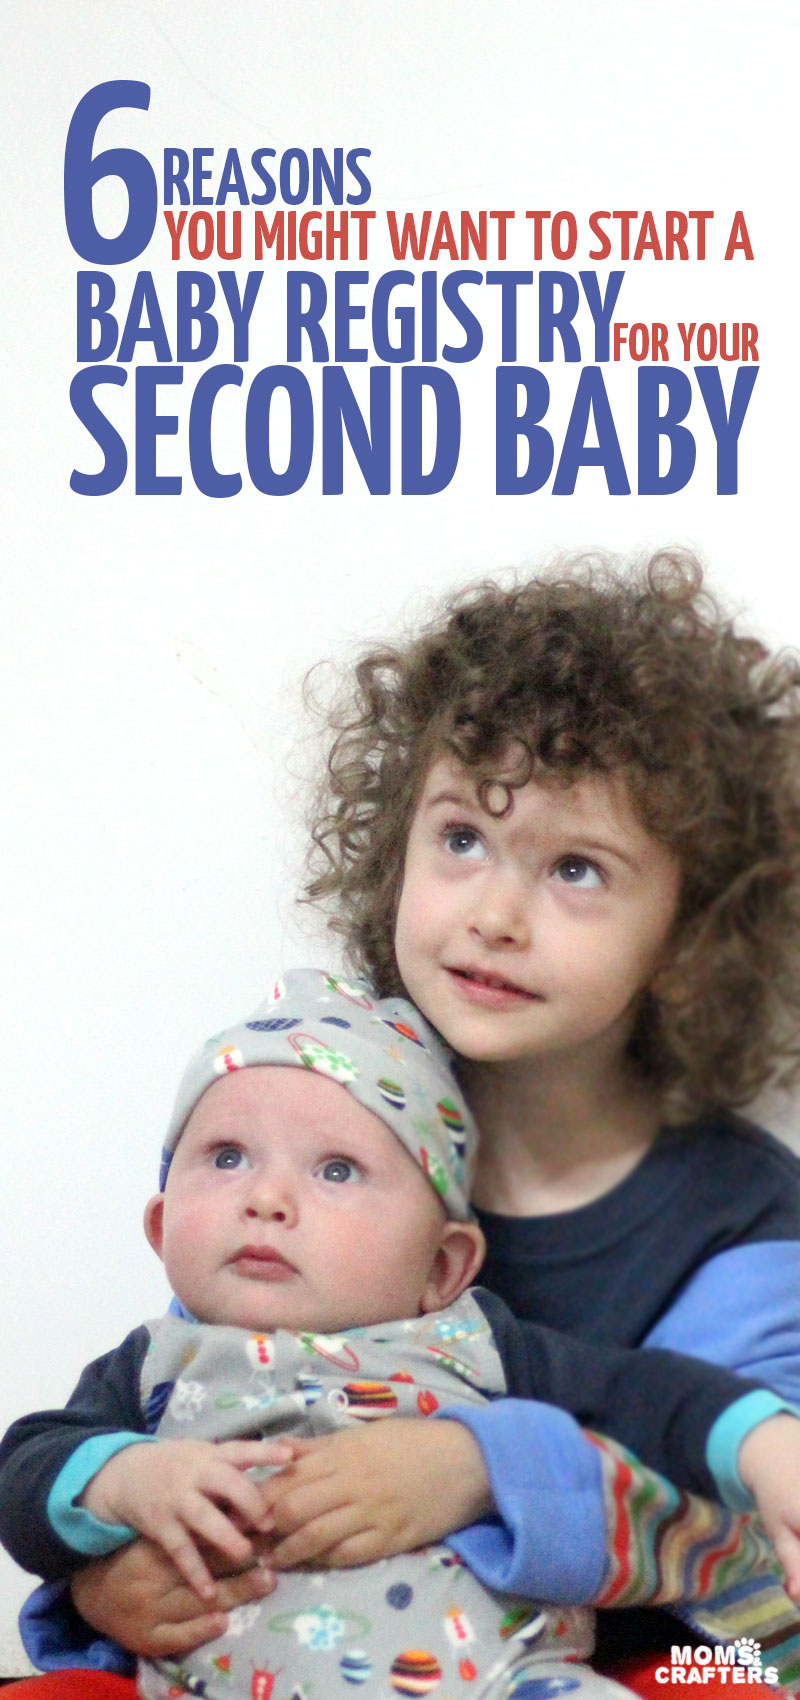 Should you make a baby registry for second baby? If you're not sure, click to find out six reasons why you might want to register for your second child - whether you're having a baby shower or not! It includes some ideas of what to register for - hope you enjoy these pregnancy tips for second time moms!